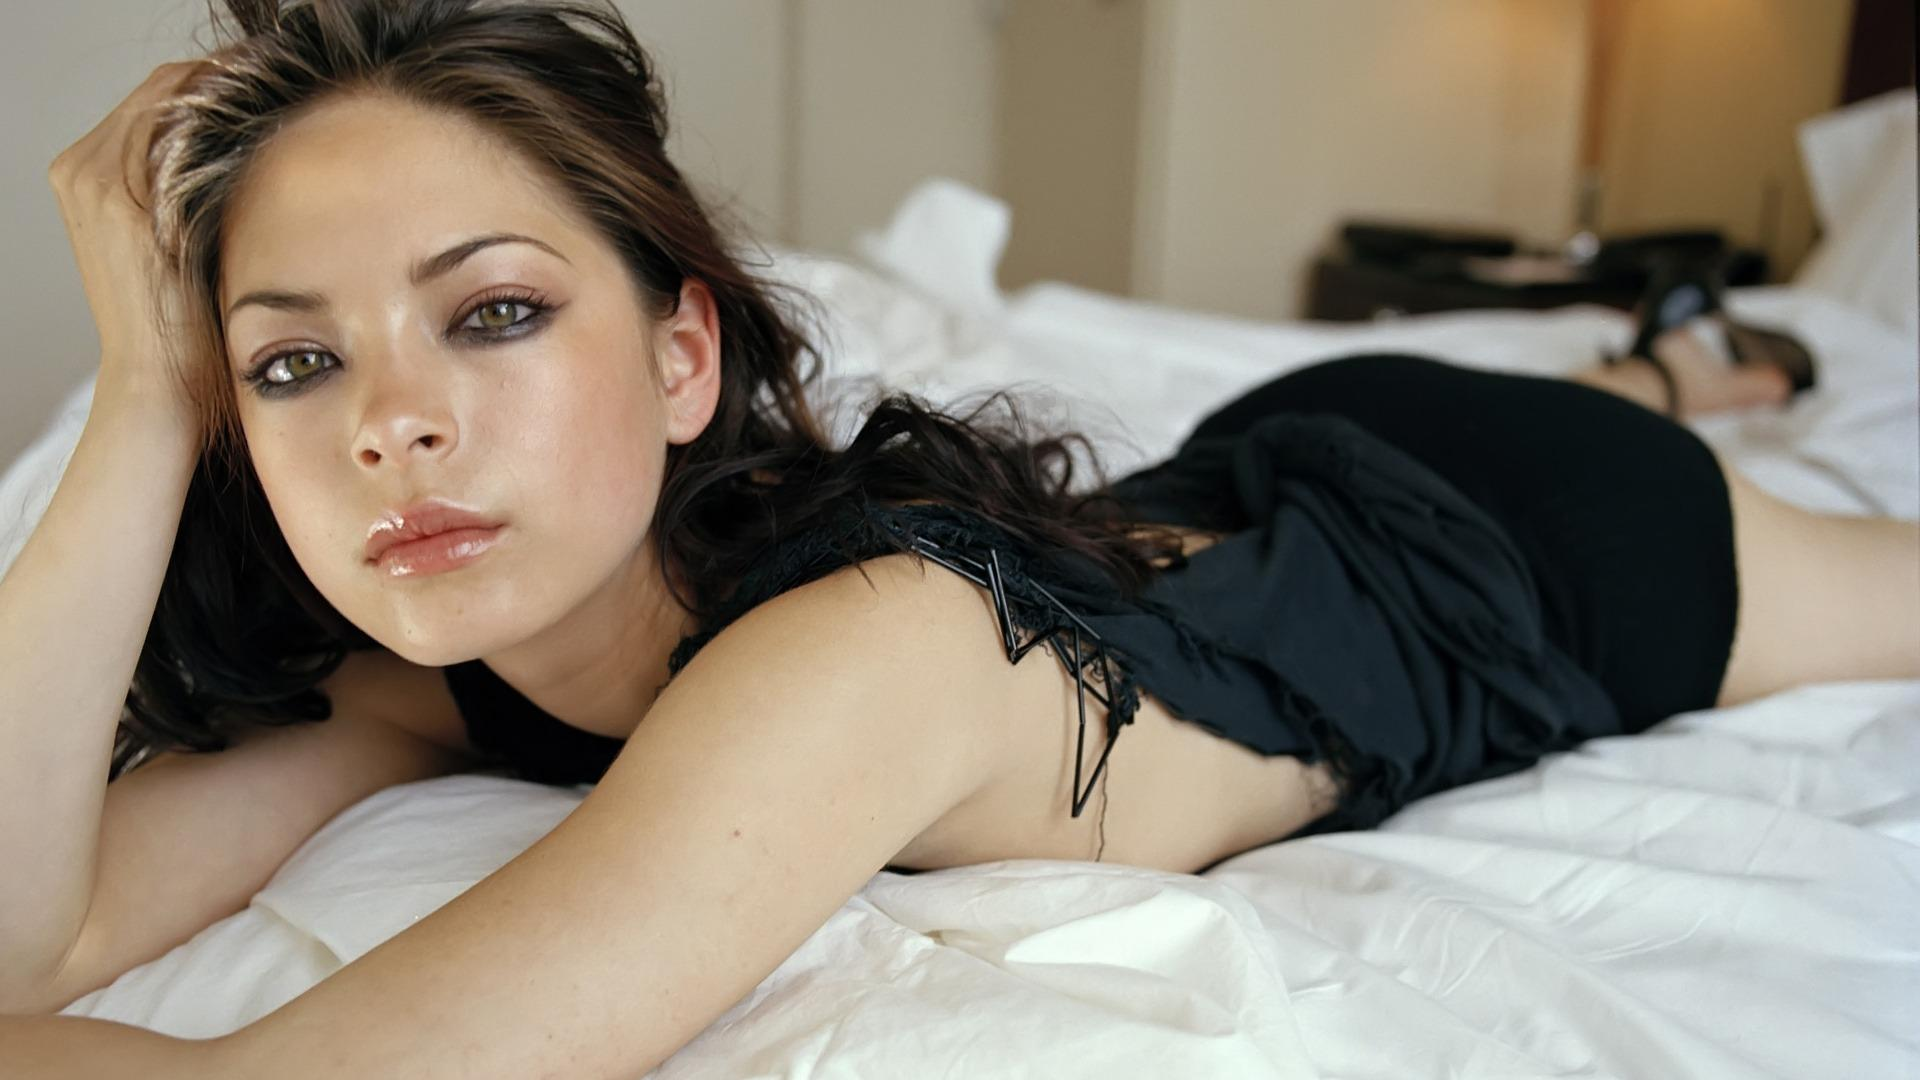 brunettes women beds Kristin Kreuk lying down - Wallpaper (#789024) / Wallbase.cc